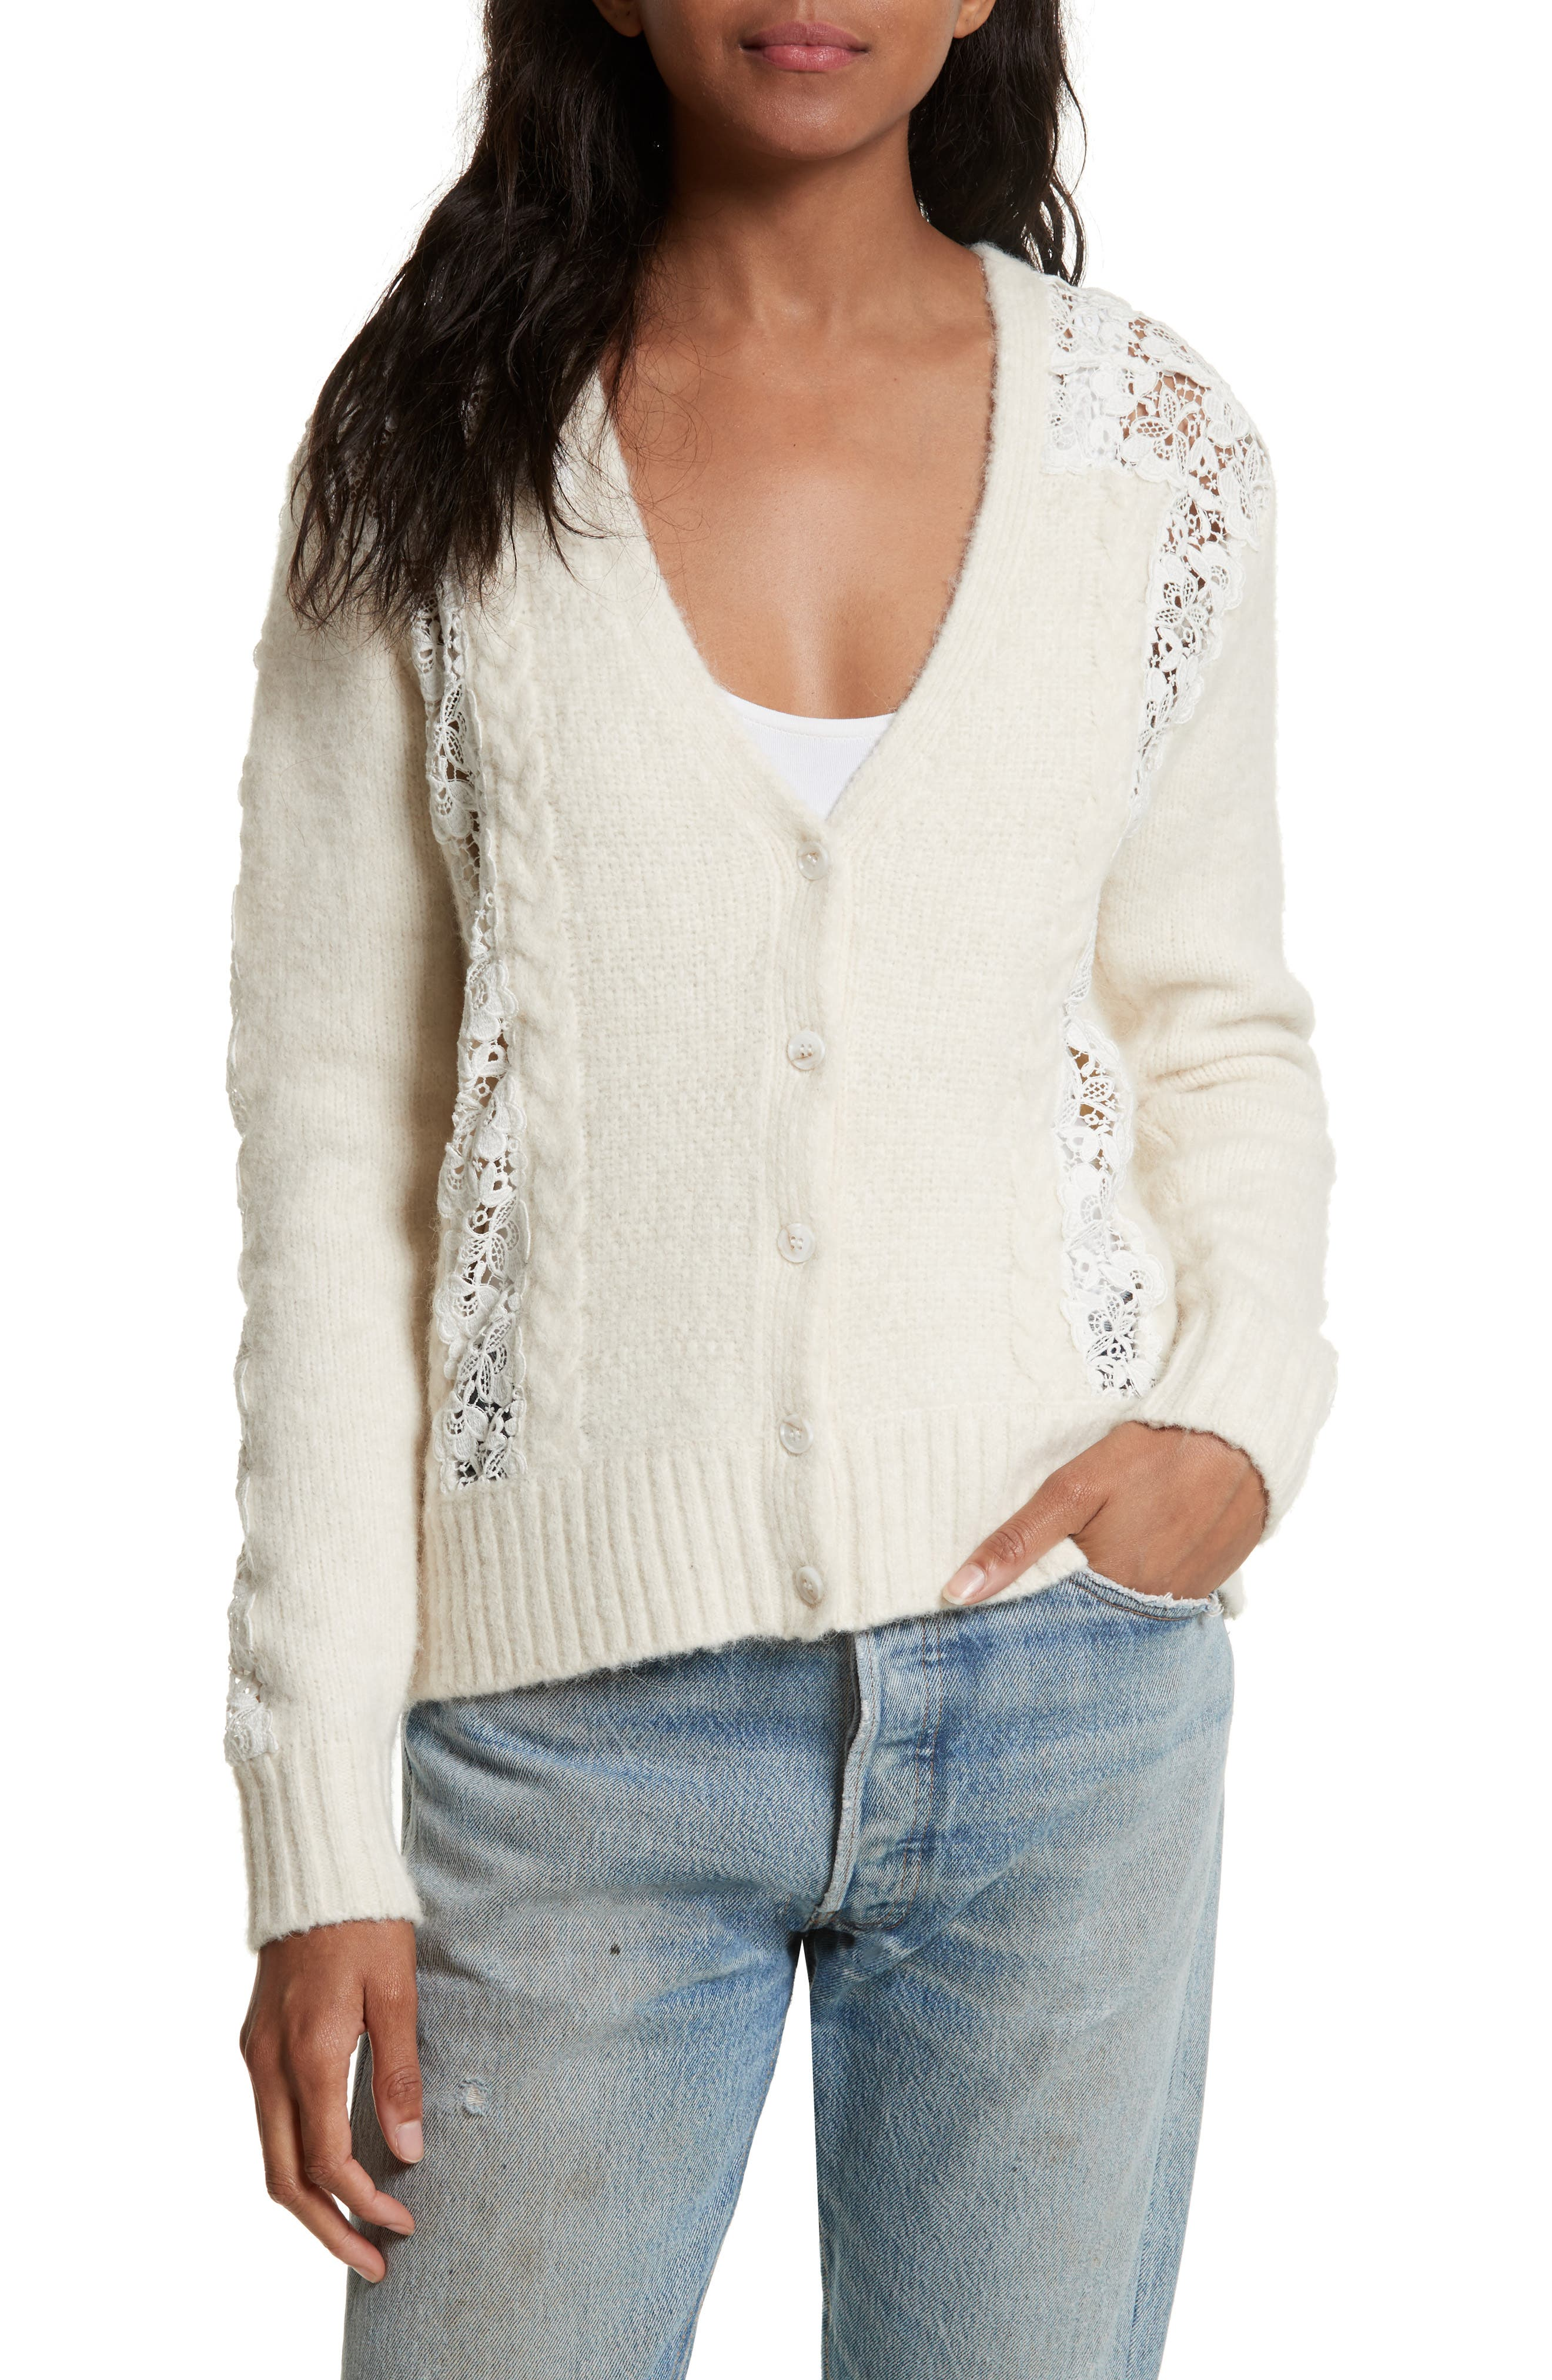 Sea Lace Lace Inset Cardigan